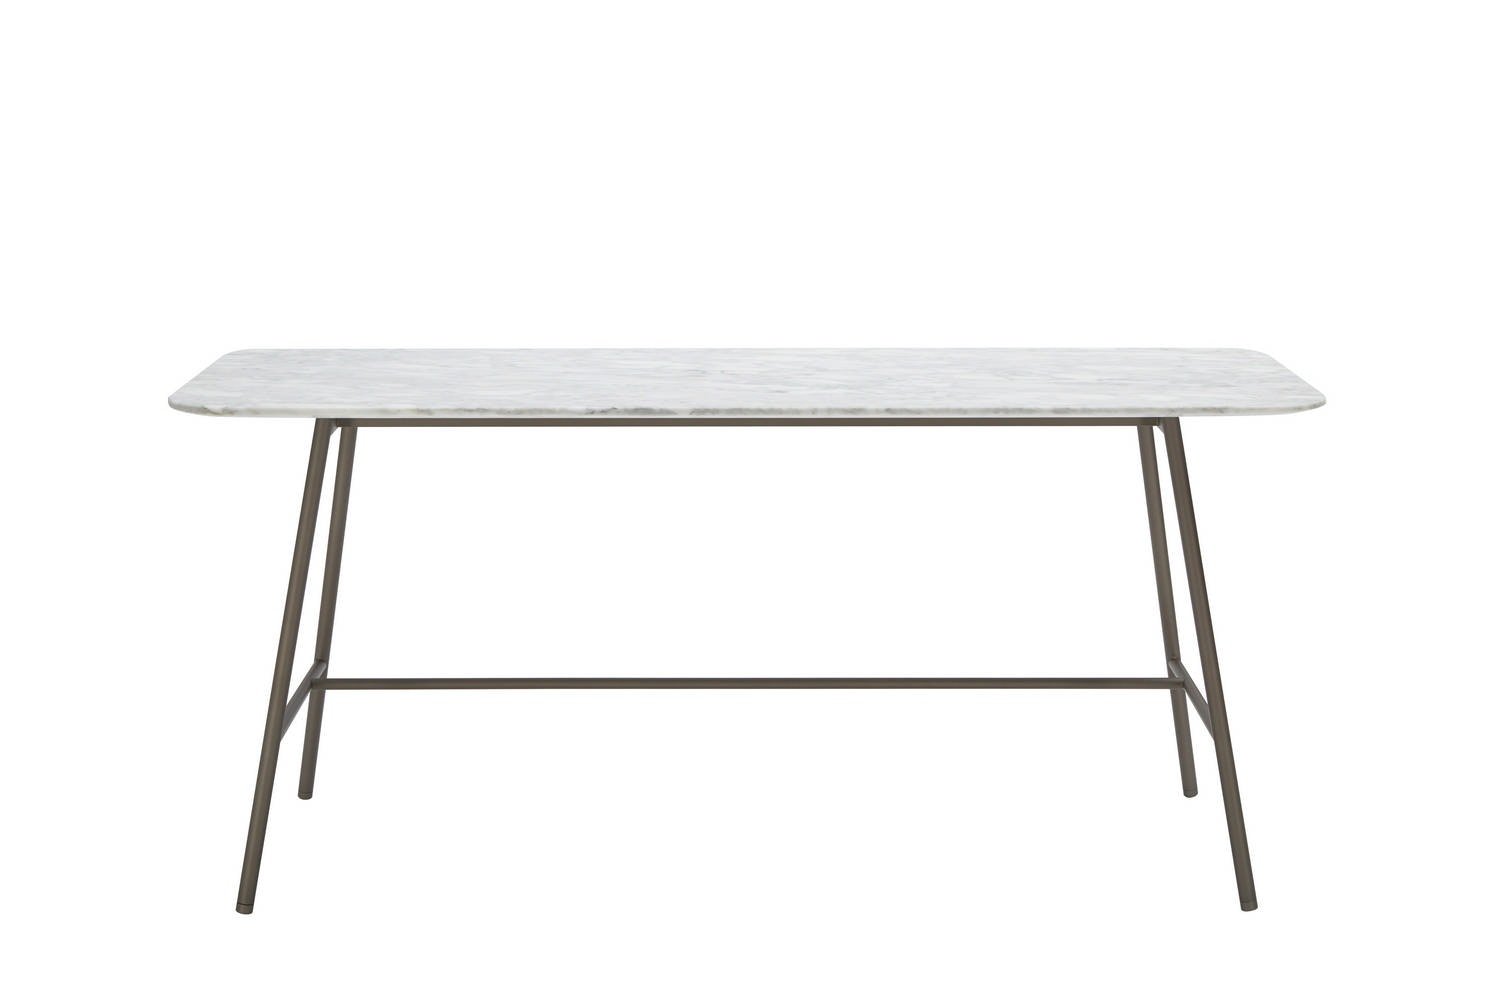 Holland Console by Metrica for SP01